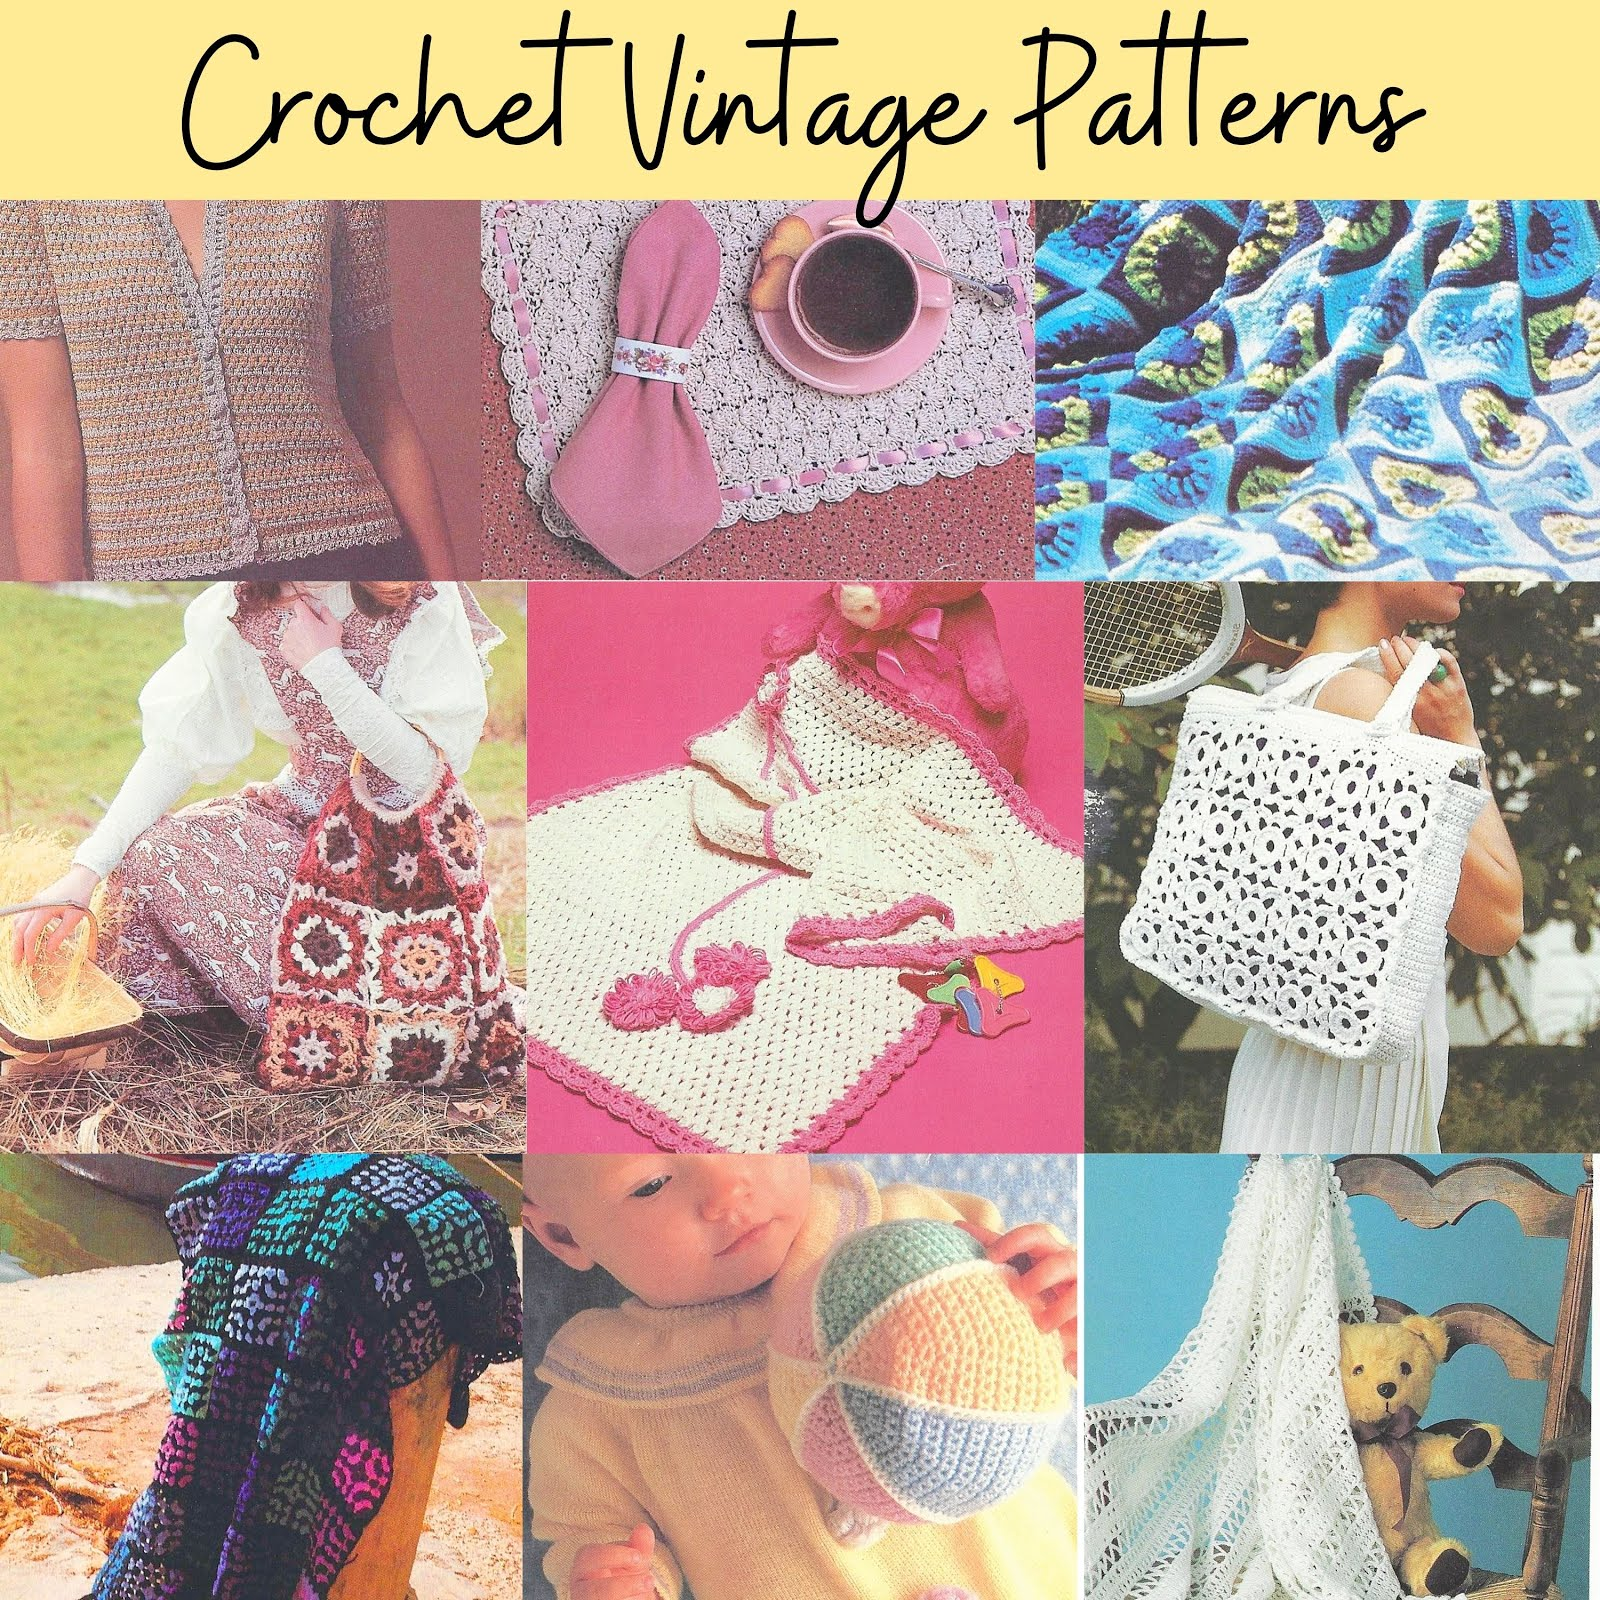 Vintage Patterns - Click for Details